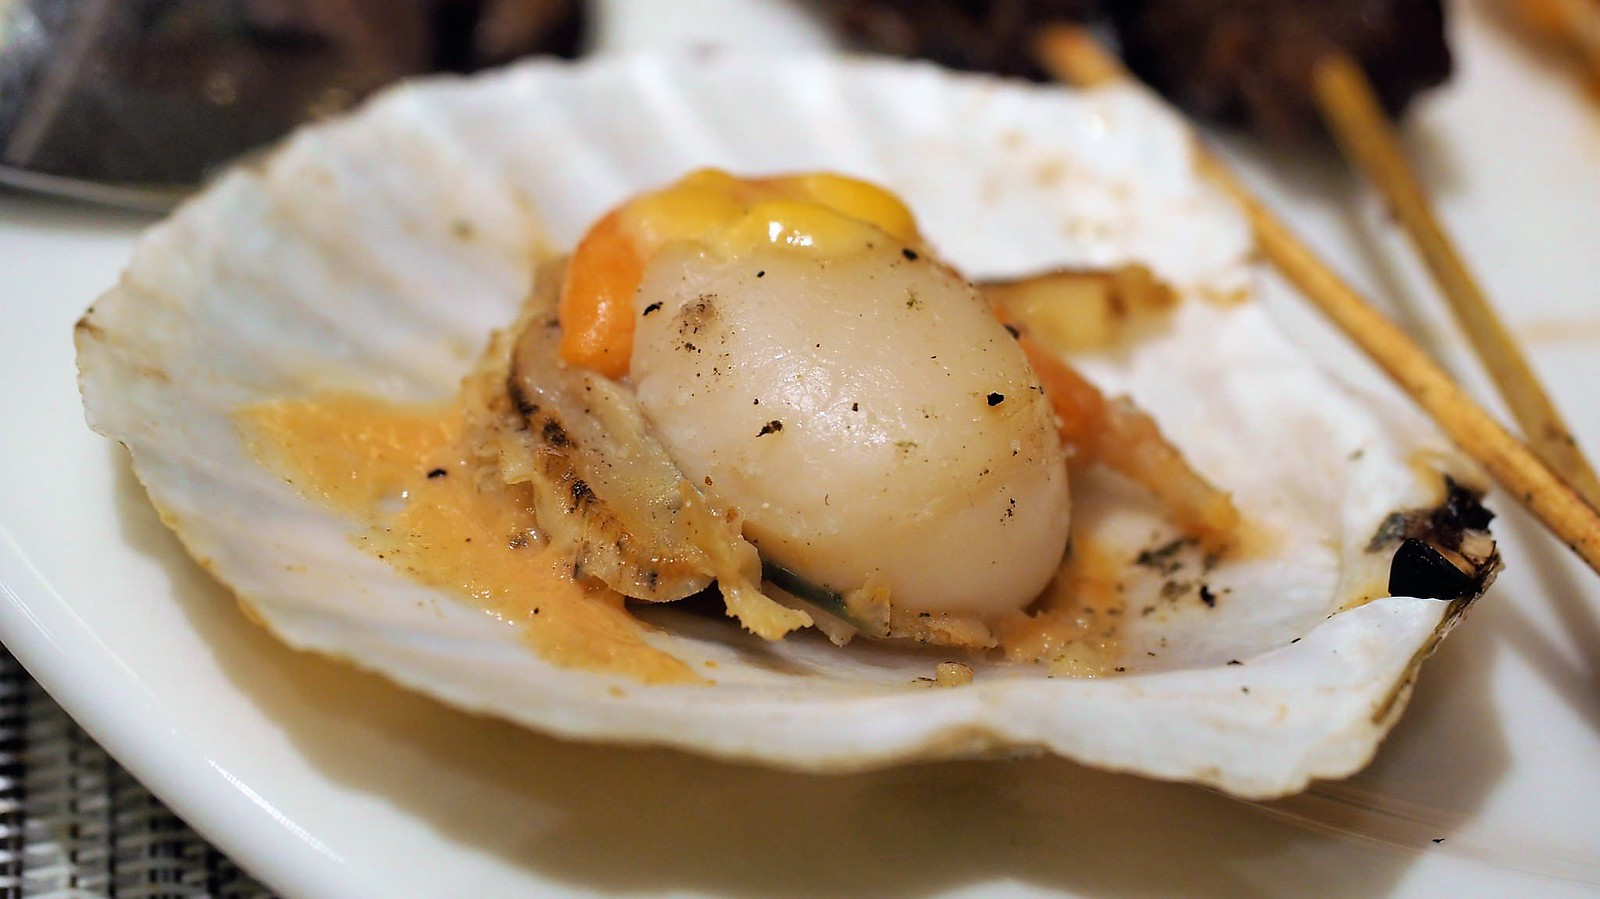 Yummy steamed scallop